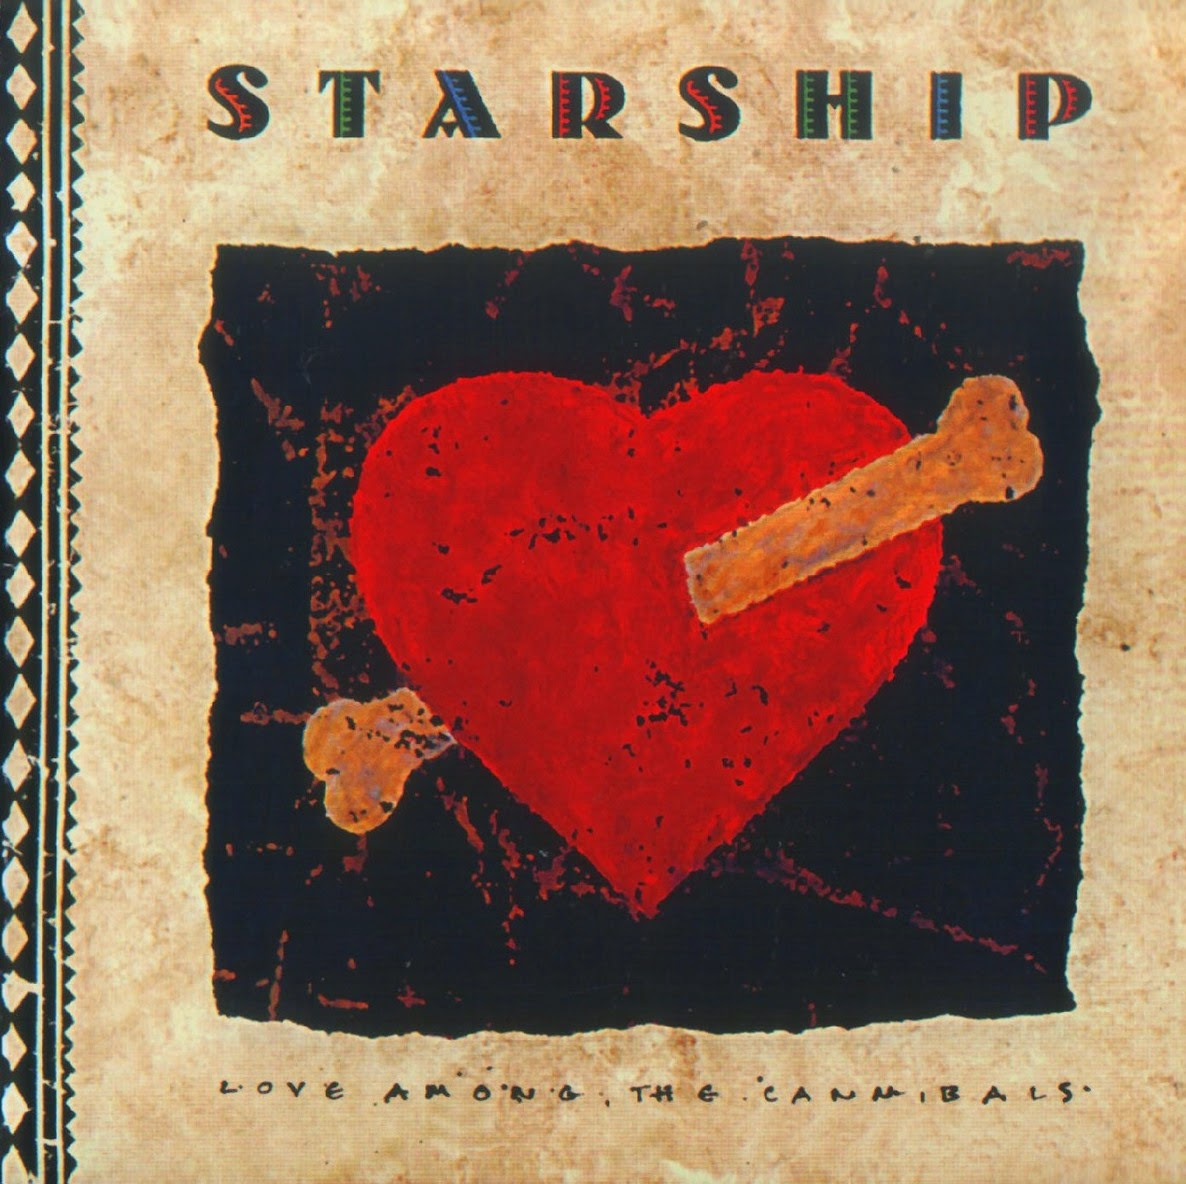 Starship Love among the cannibals 1989 aor melodic rock